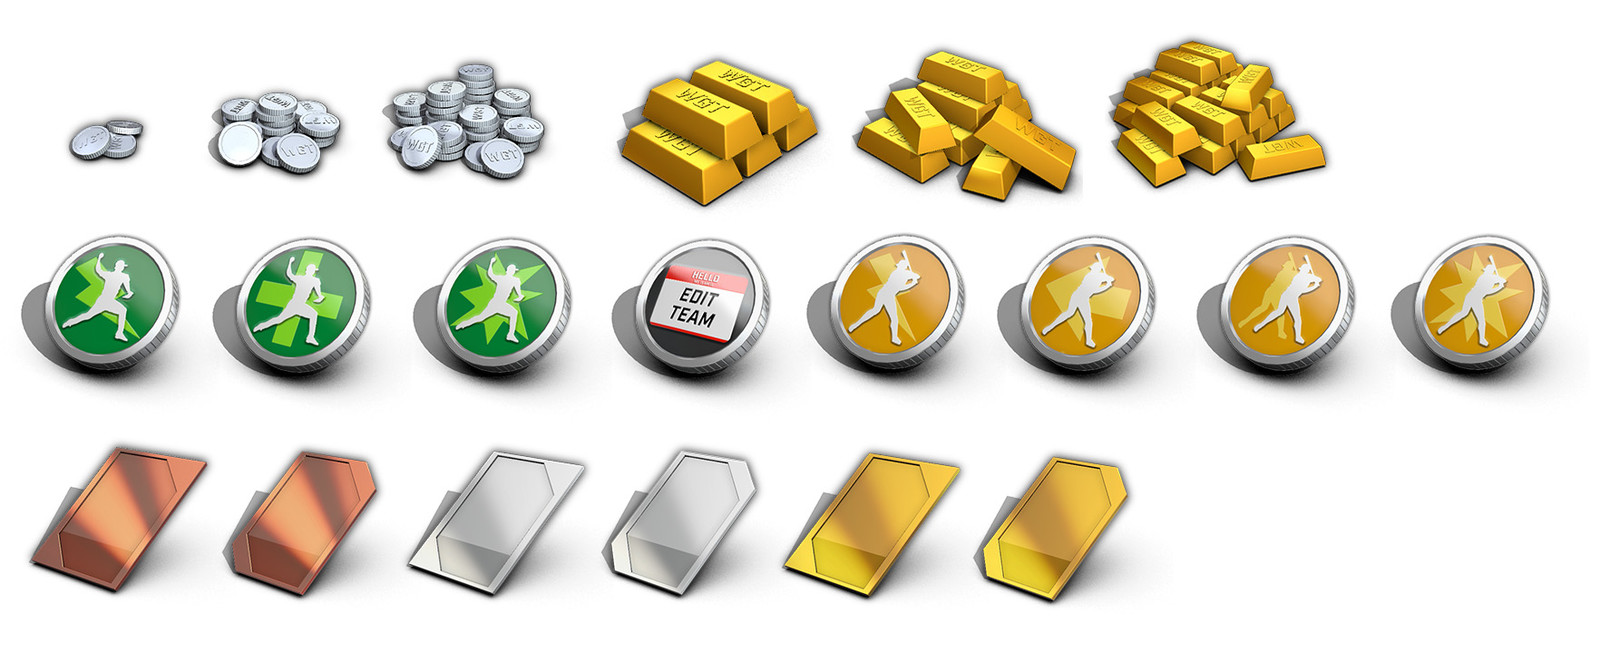 I designed, modeled, and rendered these UI icons in Maya